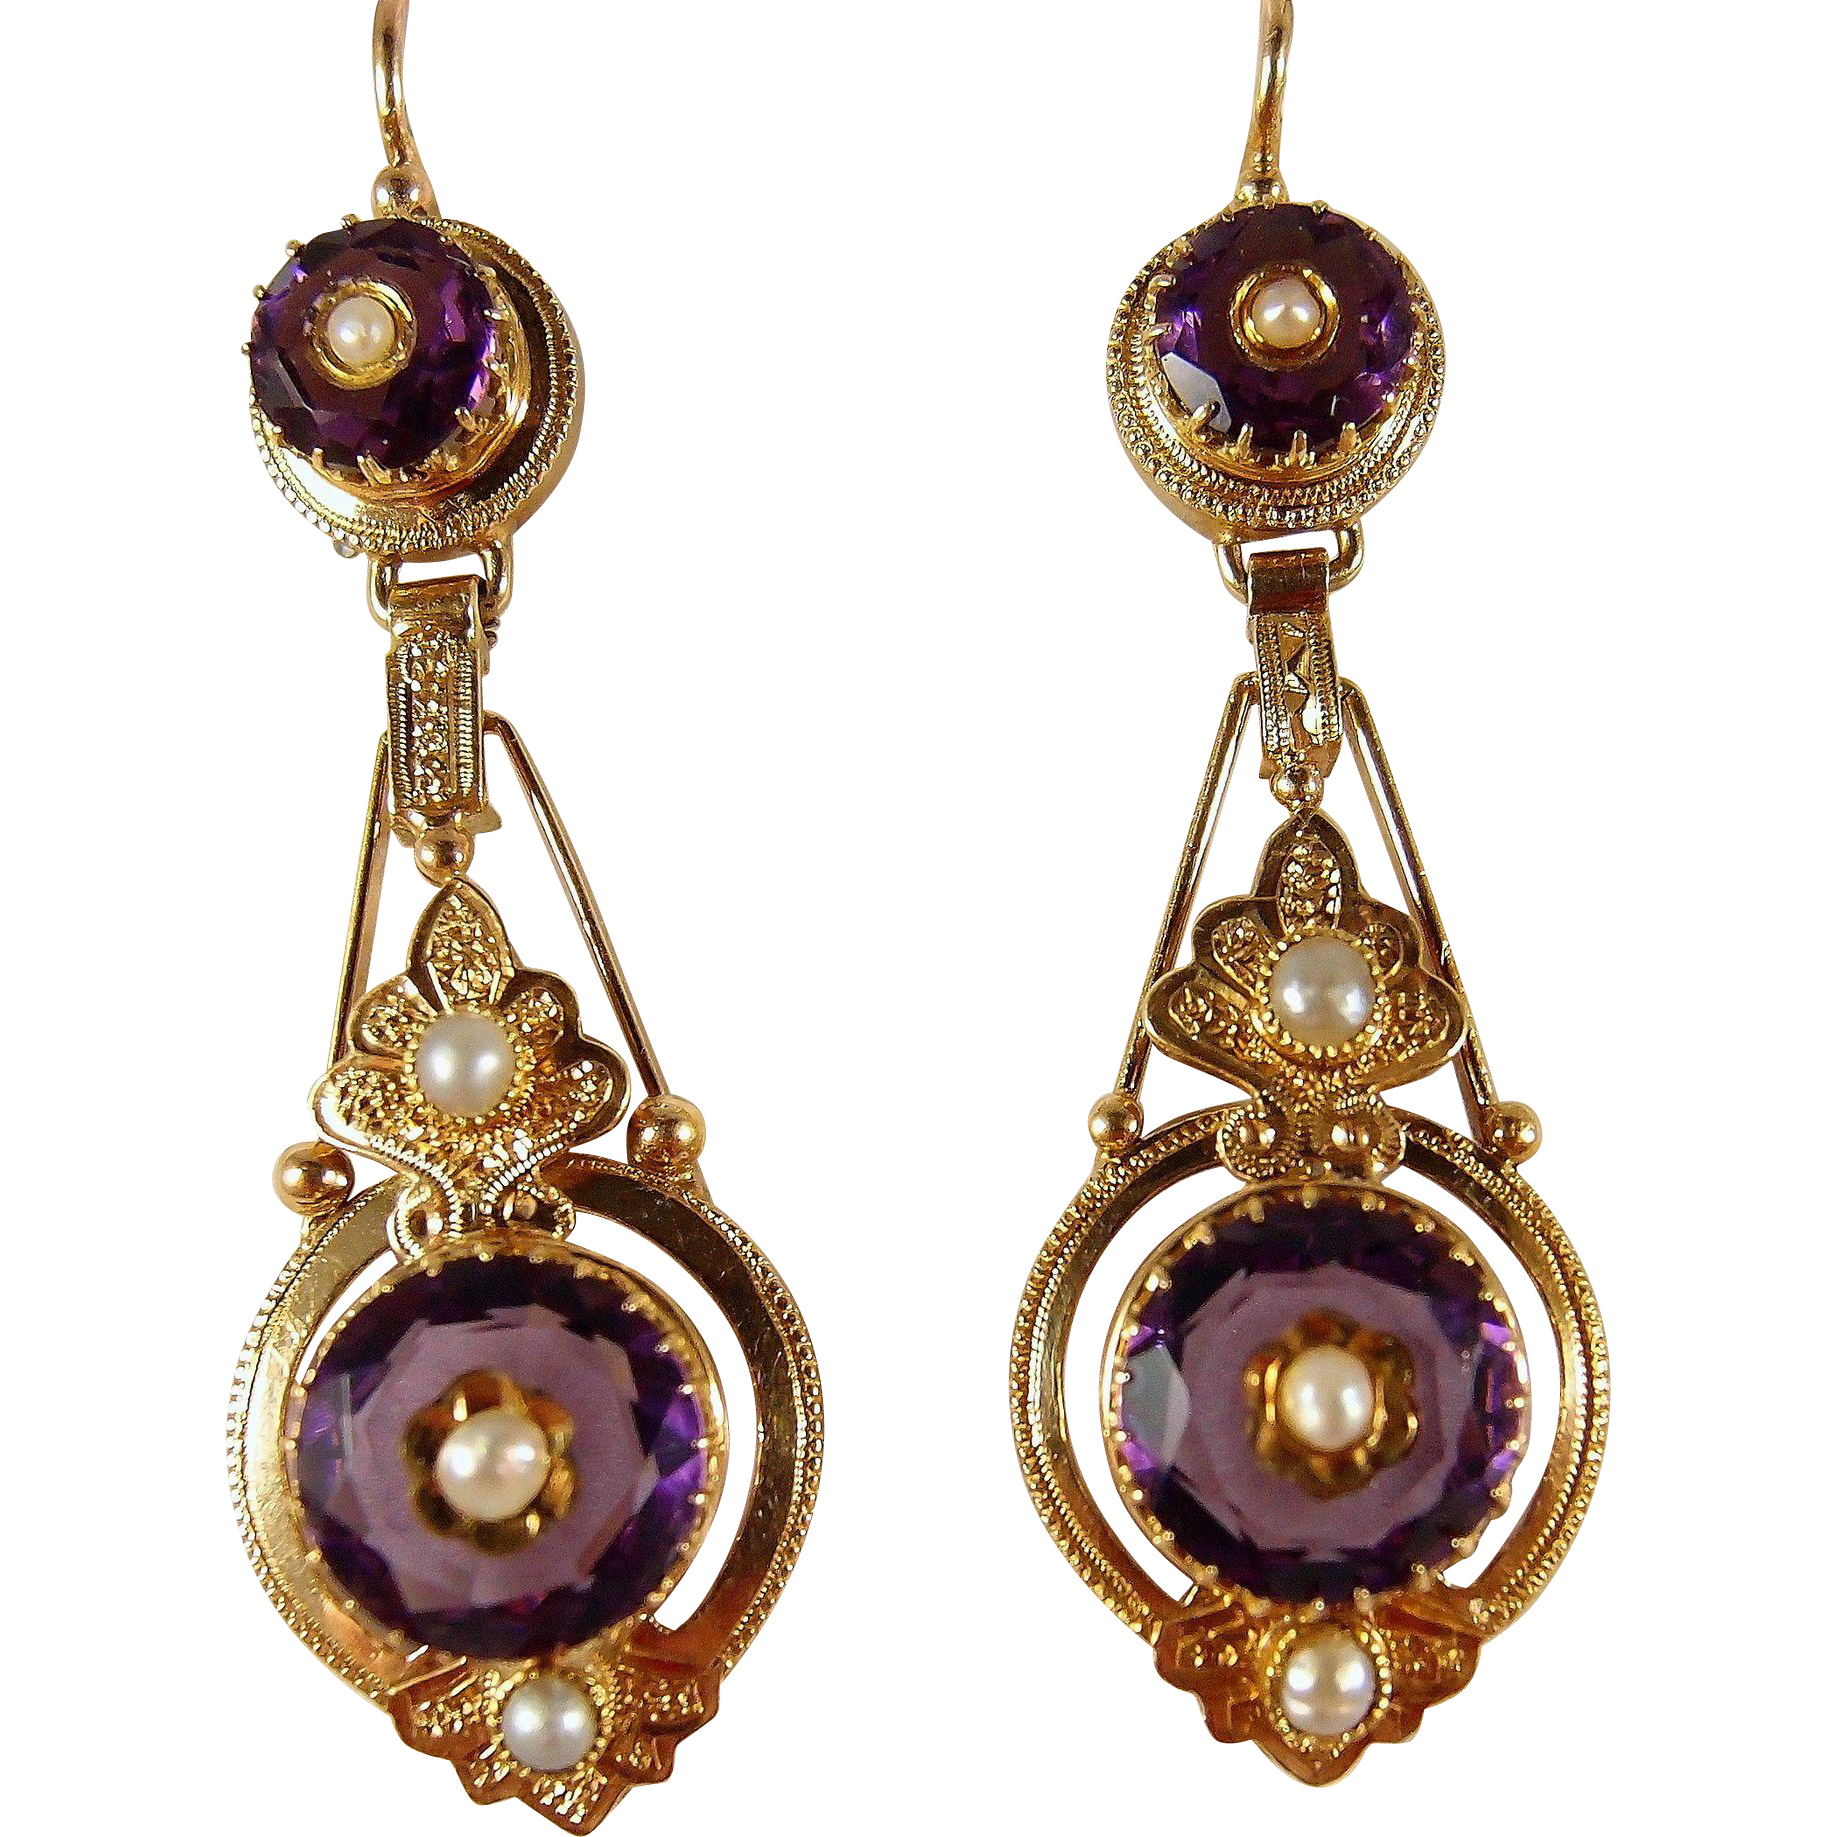 Sold Etruscan Revival Victorian Era Dangling Earrings